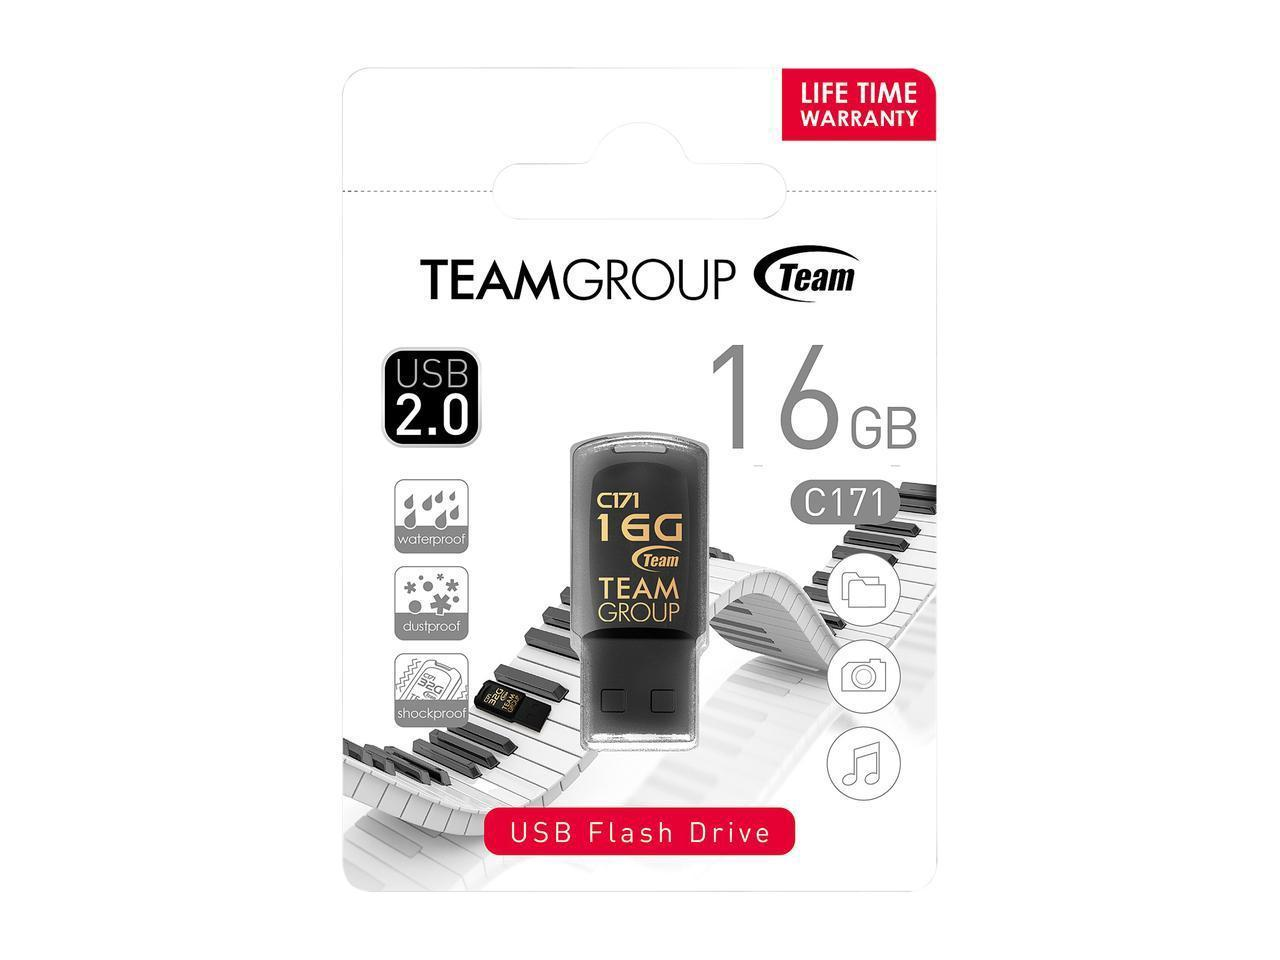 USB памет Team Group C171 16GB USB 2.0, Черен-3